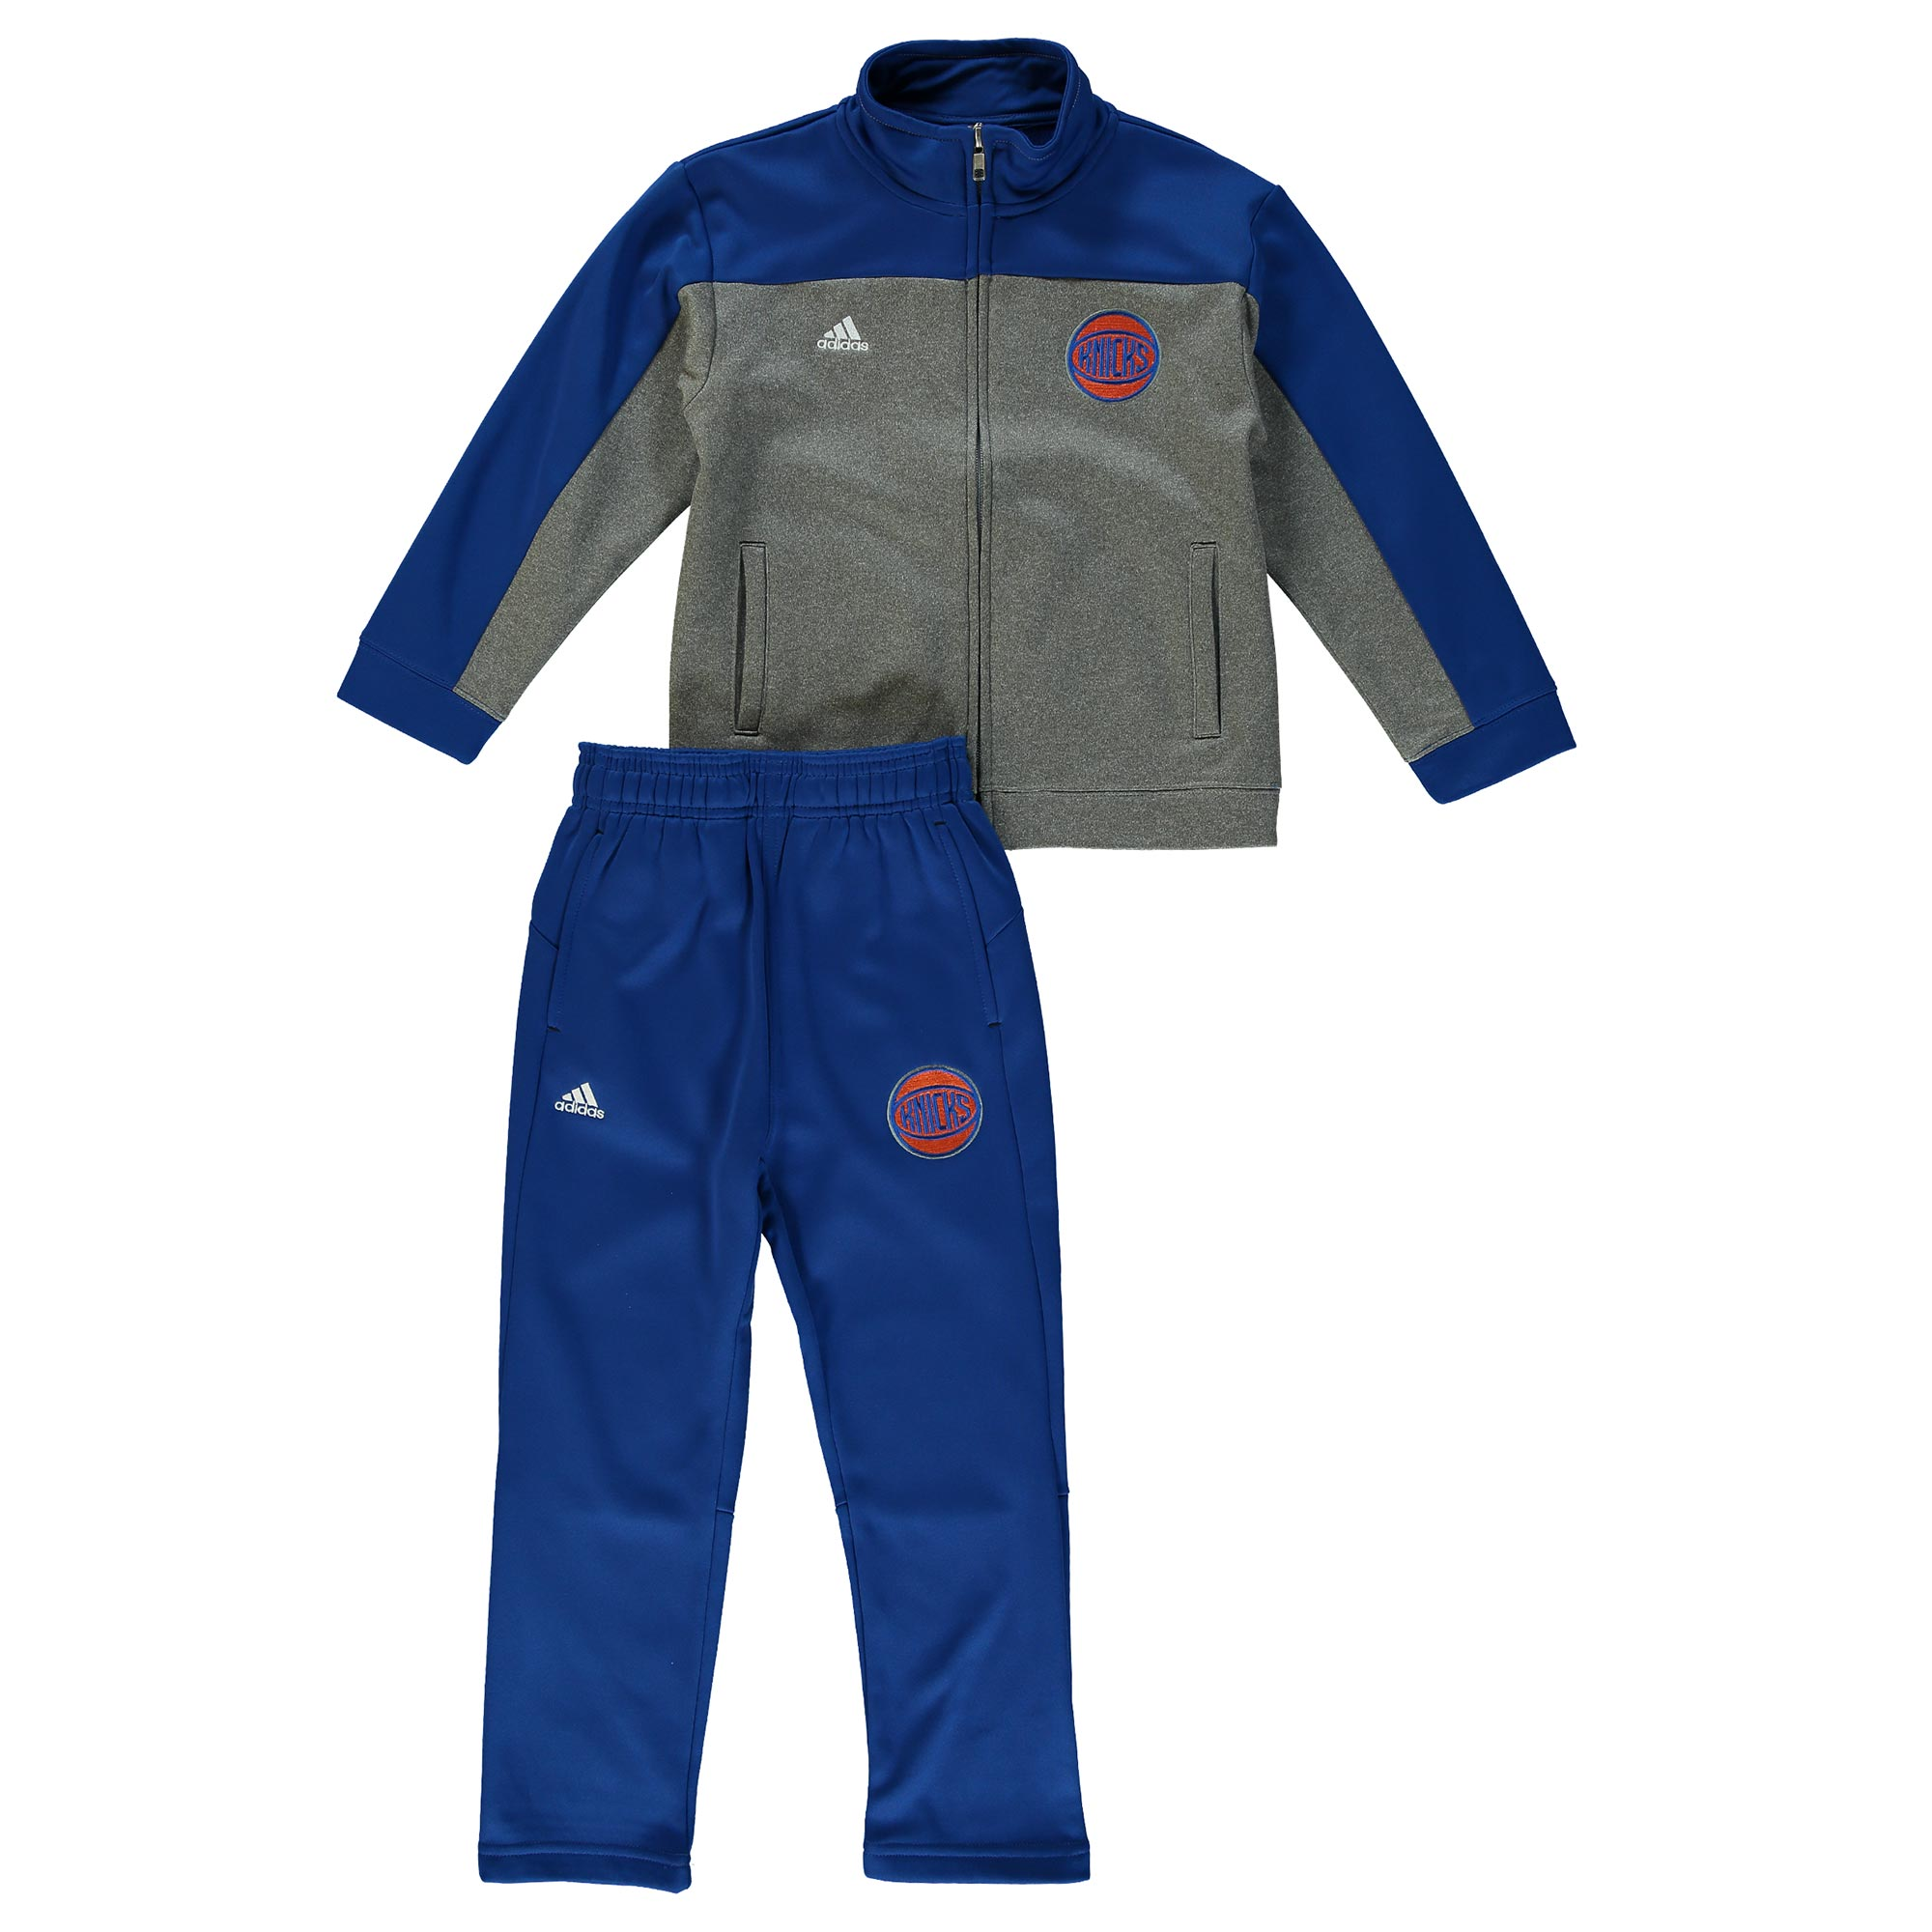 New York Knicks Tracksuit - Kids